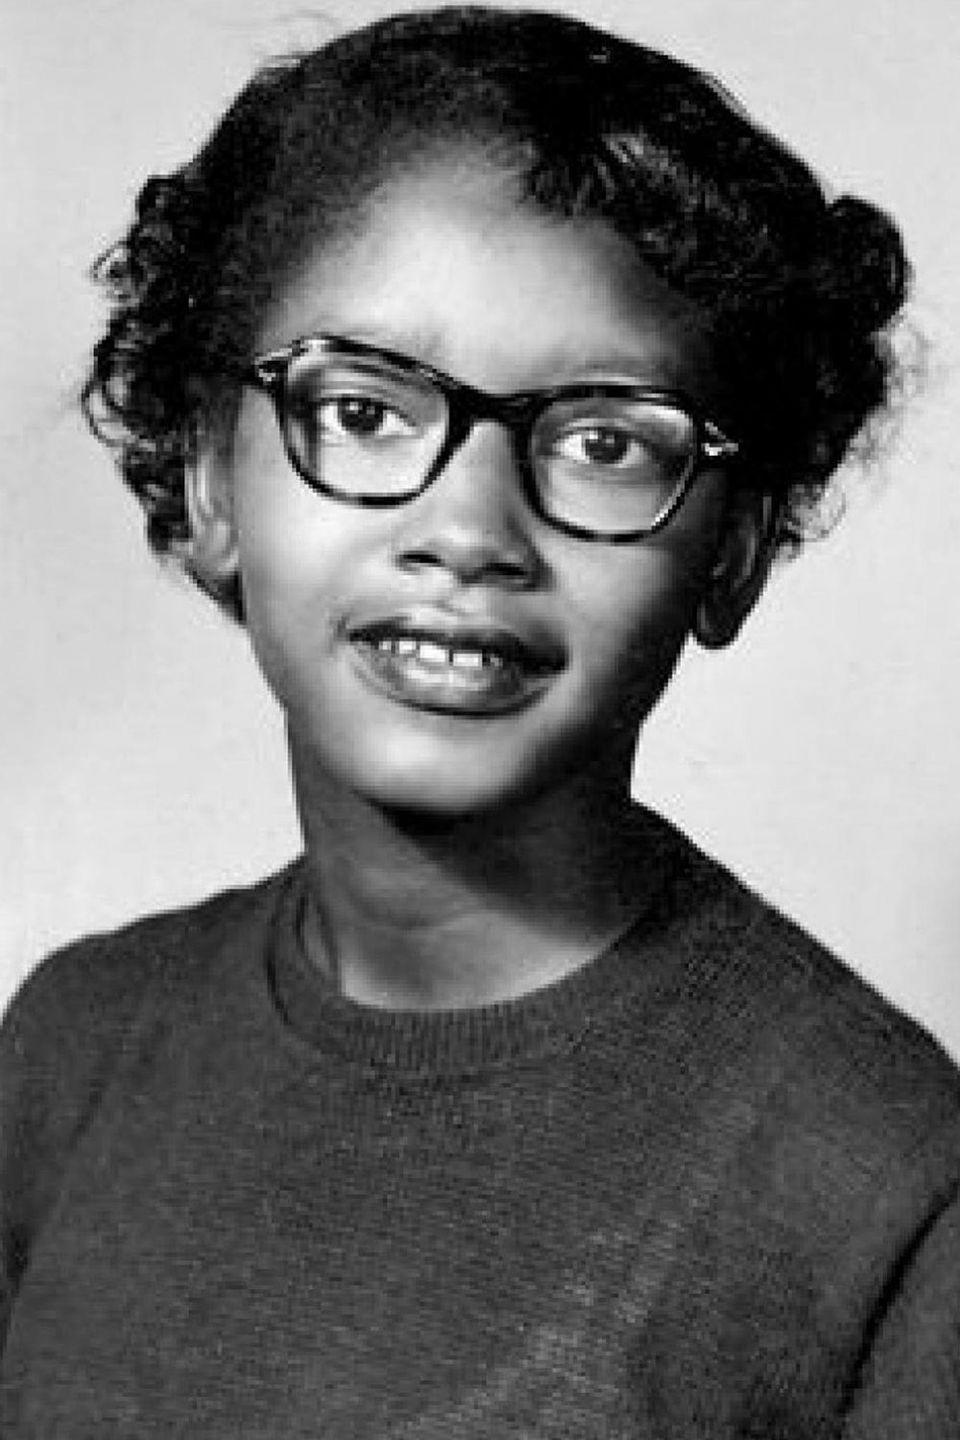 """<p>Colvin was 15 when she became a major player in the Civil Rights Movement by refusing to give up her bus seat to a caucasian rider. This was nine months before Rosa Parks was arrested for the same thing. She was one of the four plaintiffs involved in the Supreme Court case that ultimately outlawed segregation on Alabama buses. Colvin has said about her experience, """"I feel very, very proud of what I did. I do feel like what I did was a spark and it caught on.""""</p>"""